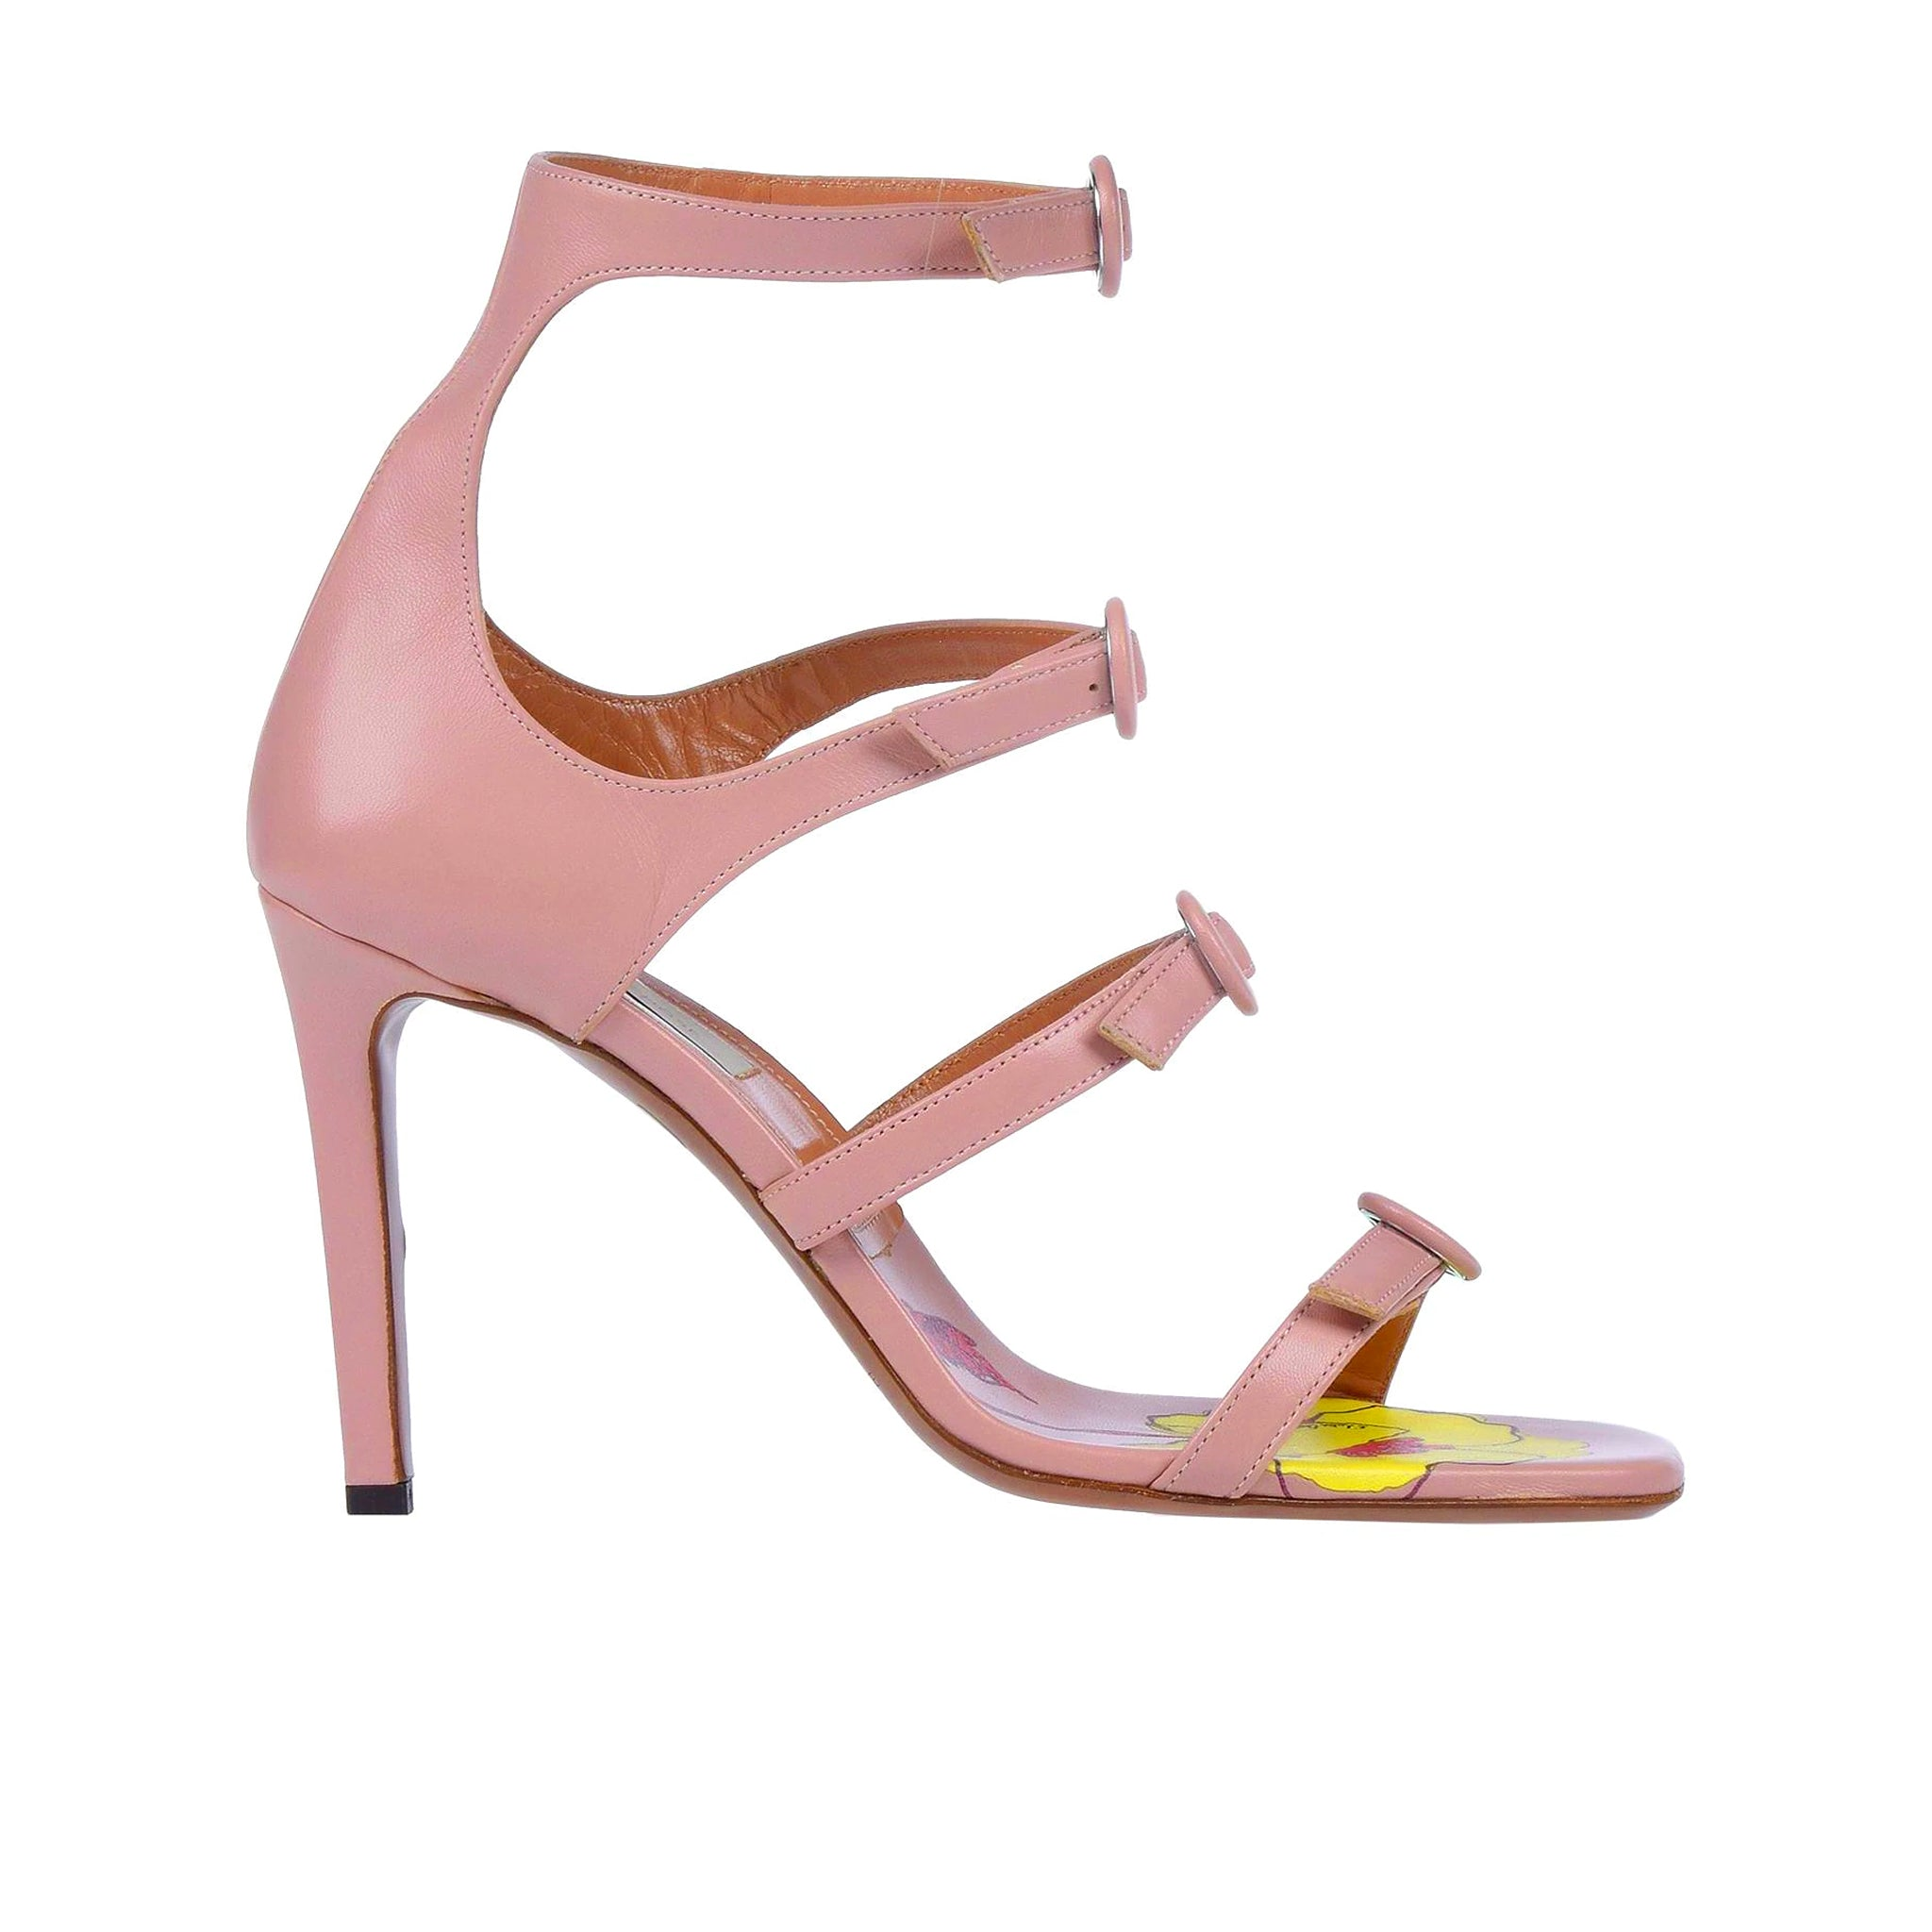 L'Autre Chose Leather Heel Sandals